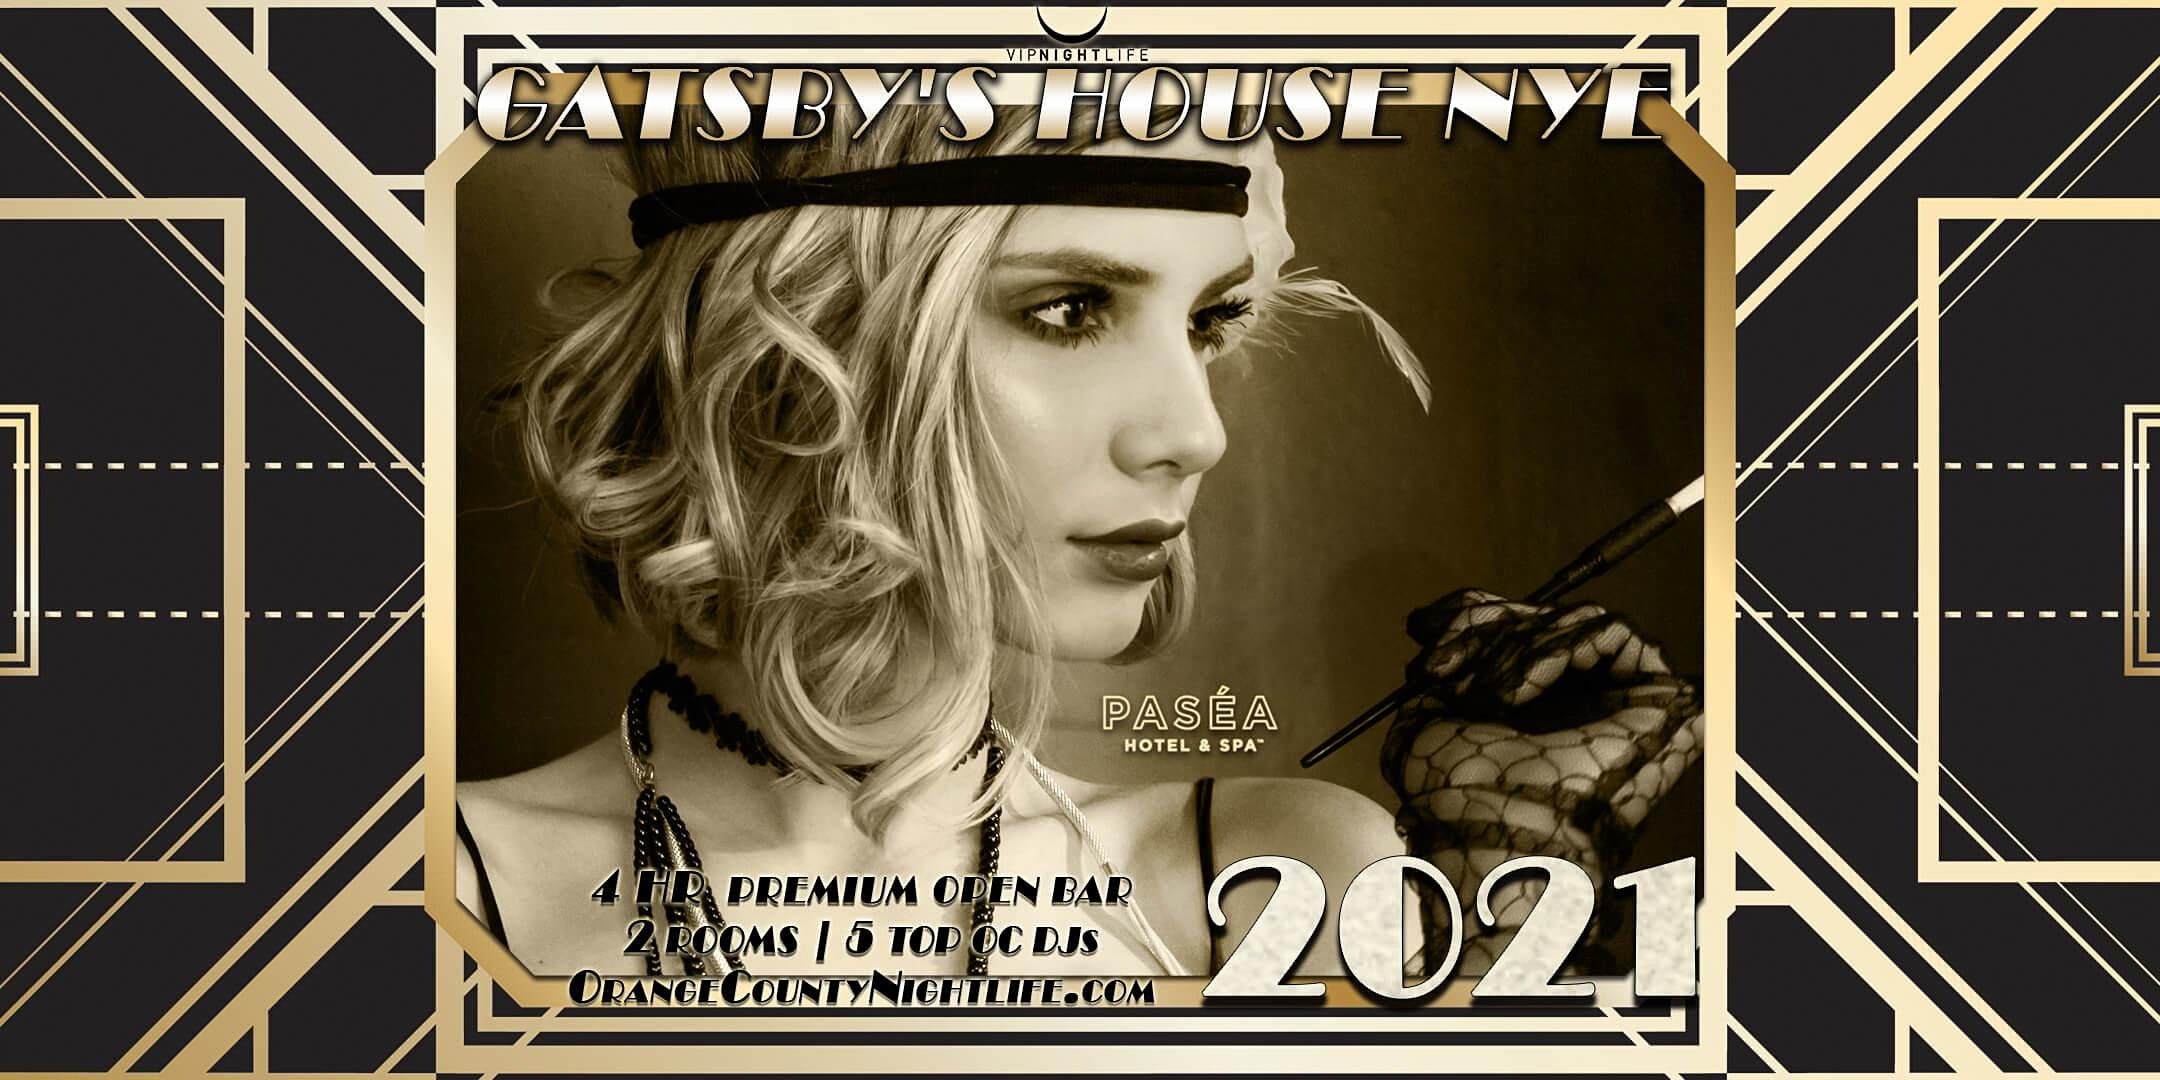 Gatsby's House - OC New Year's Eve 2021 - VipNightlife